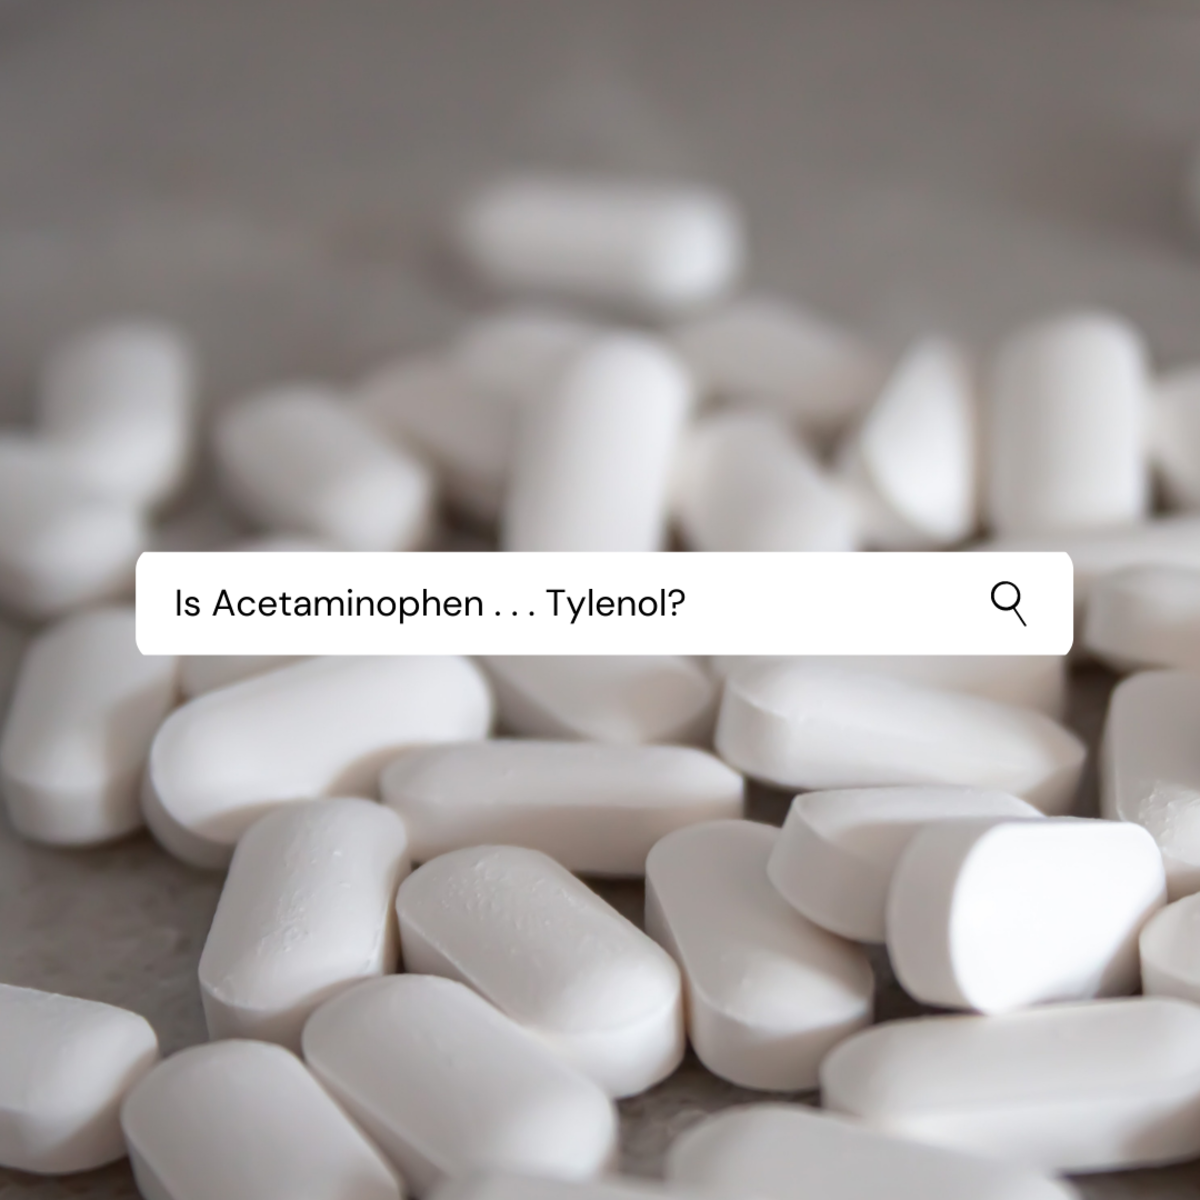 Are Tylenol and acetaminophen the same?